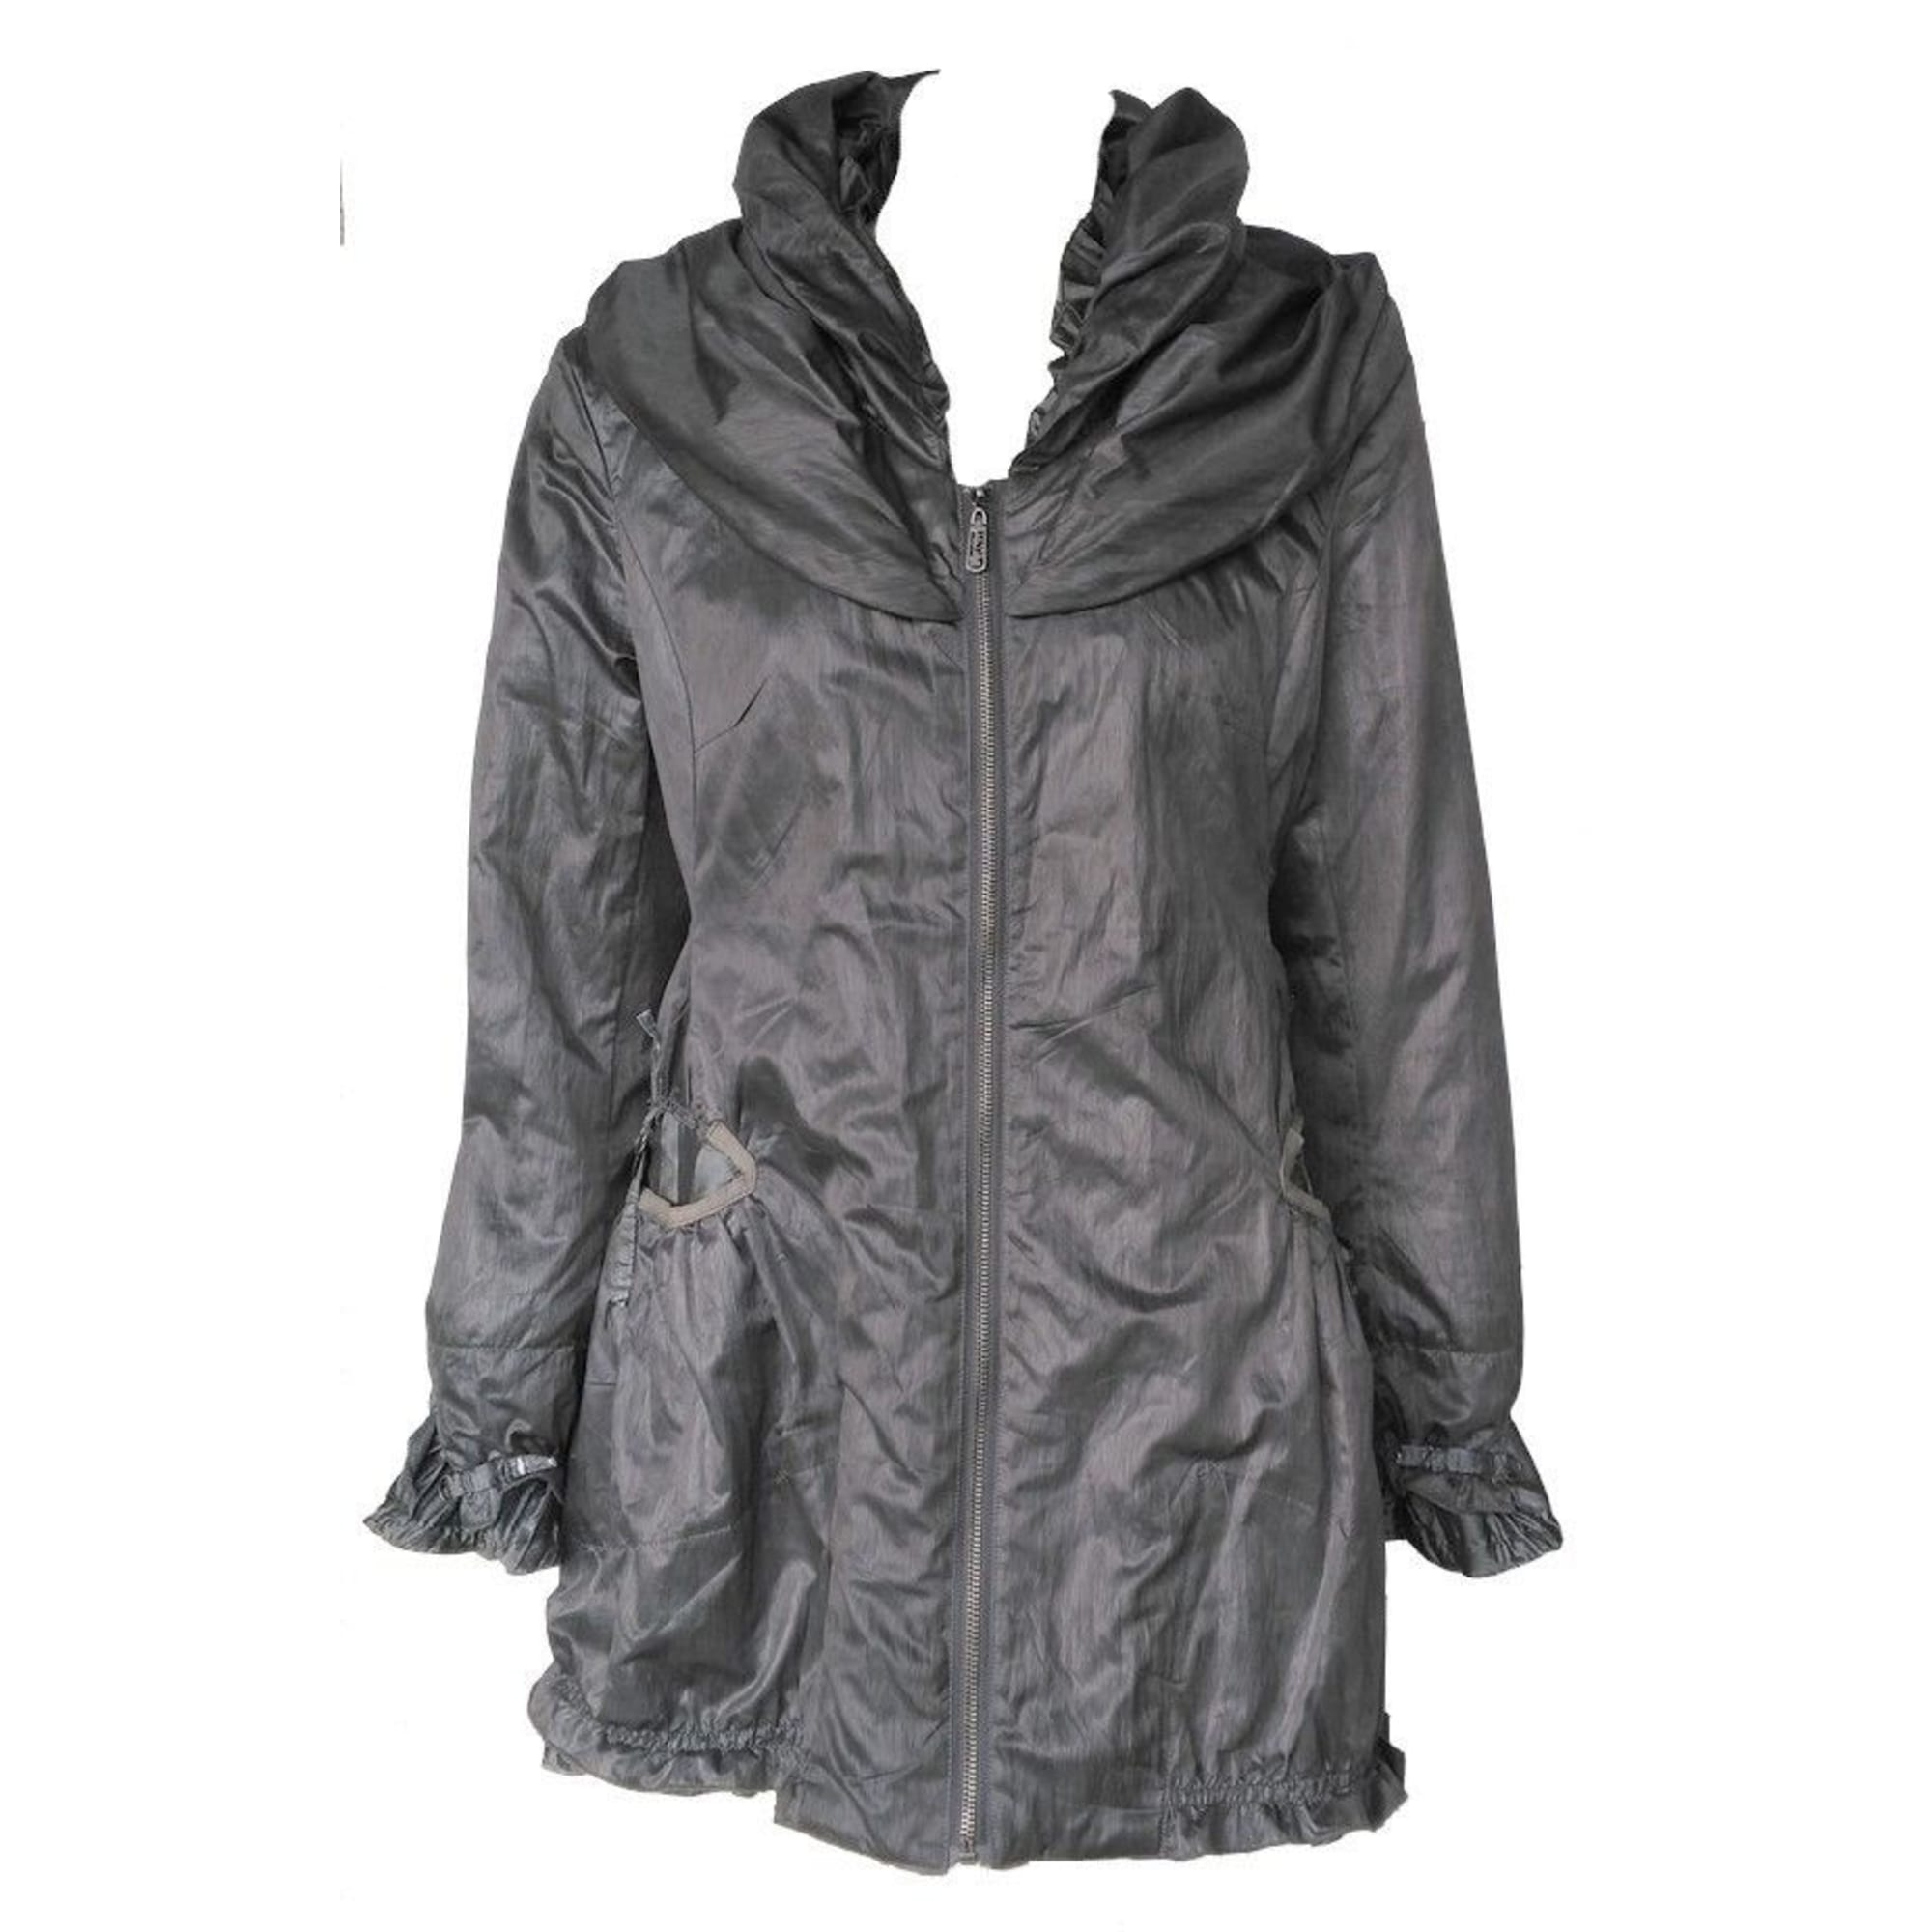 Imperméable, trench ALEXO Gris, anthracite